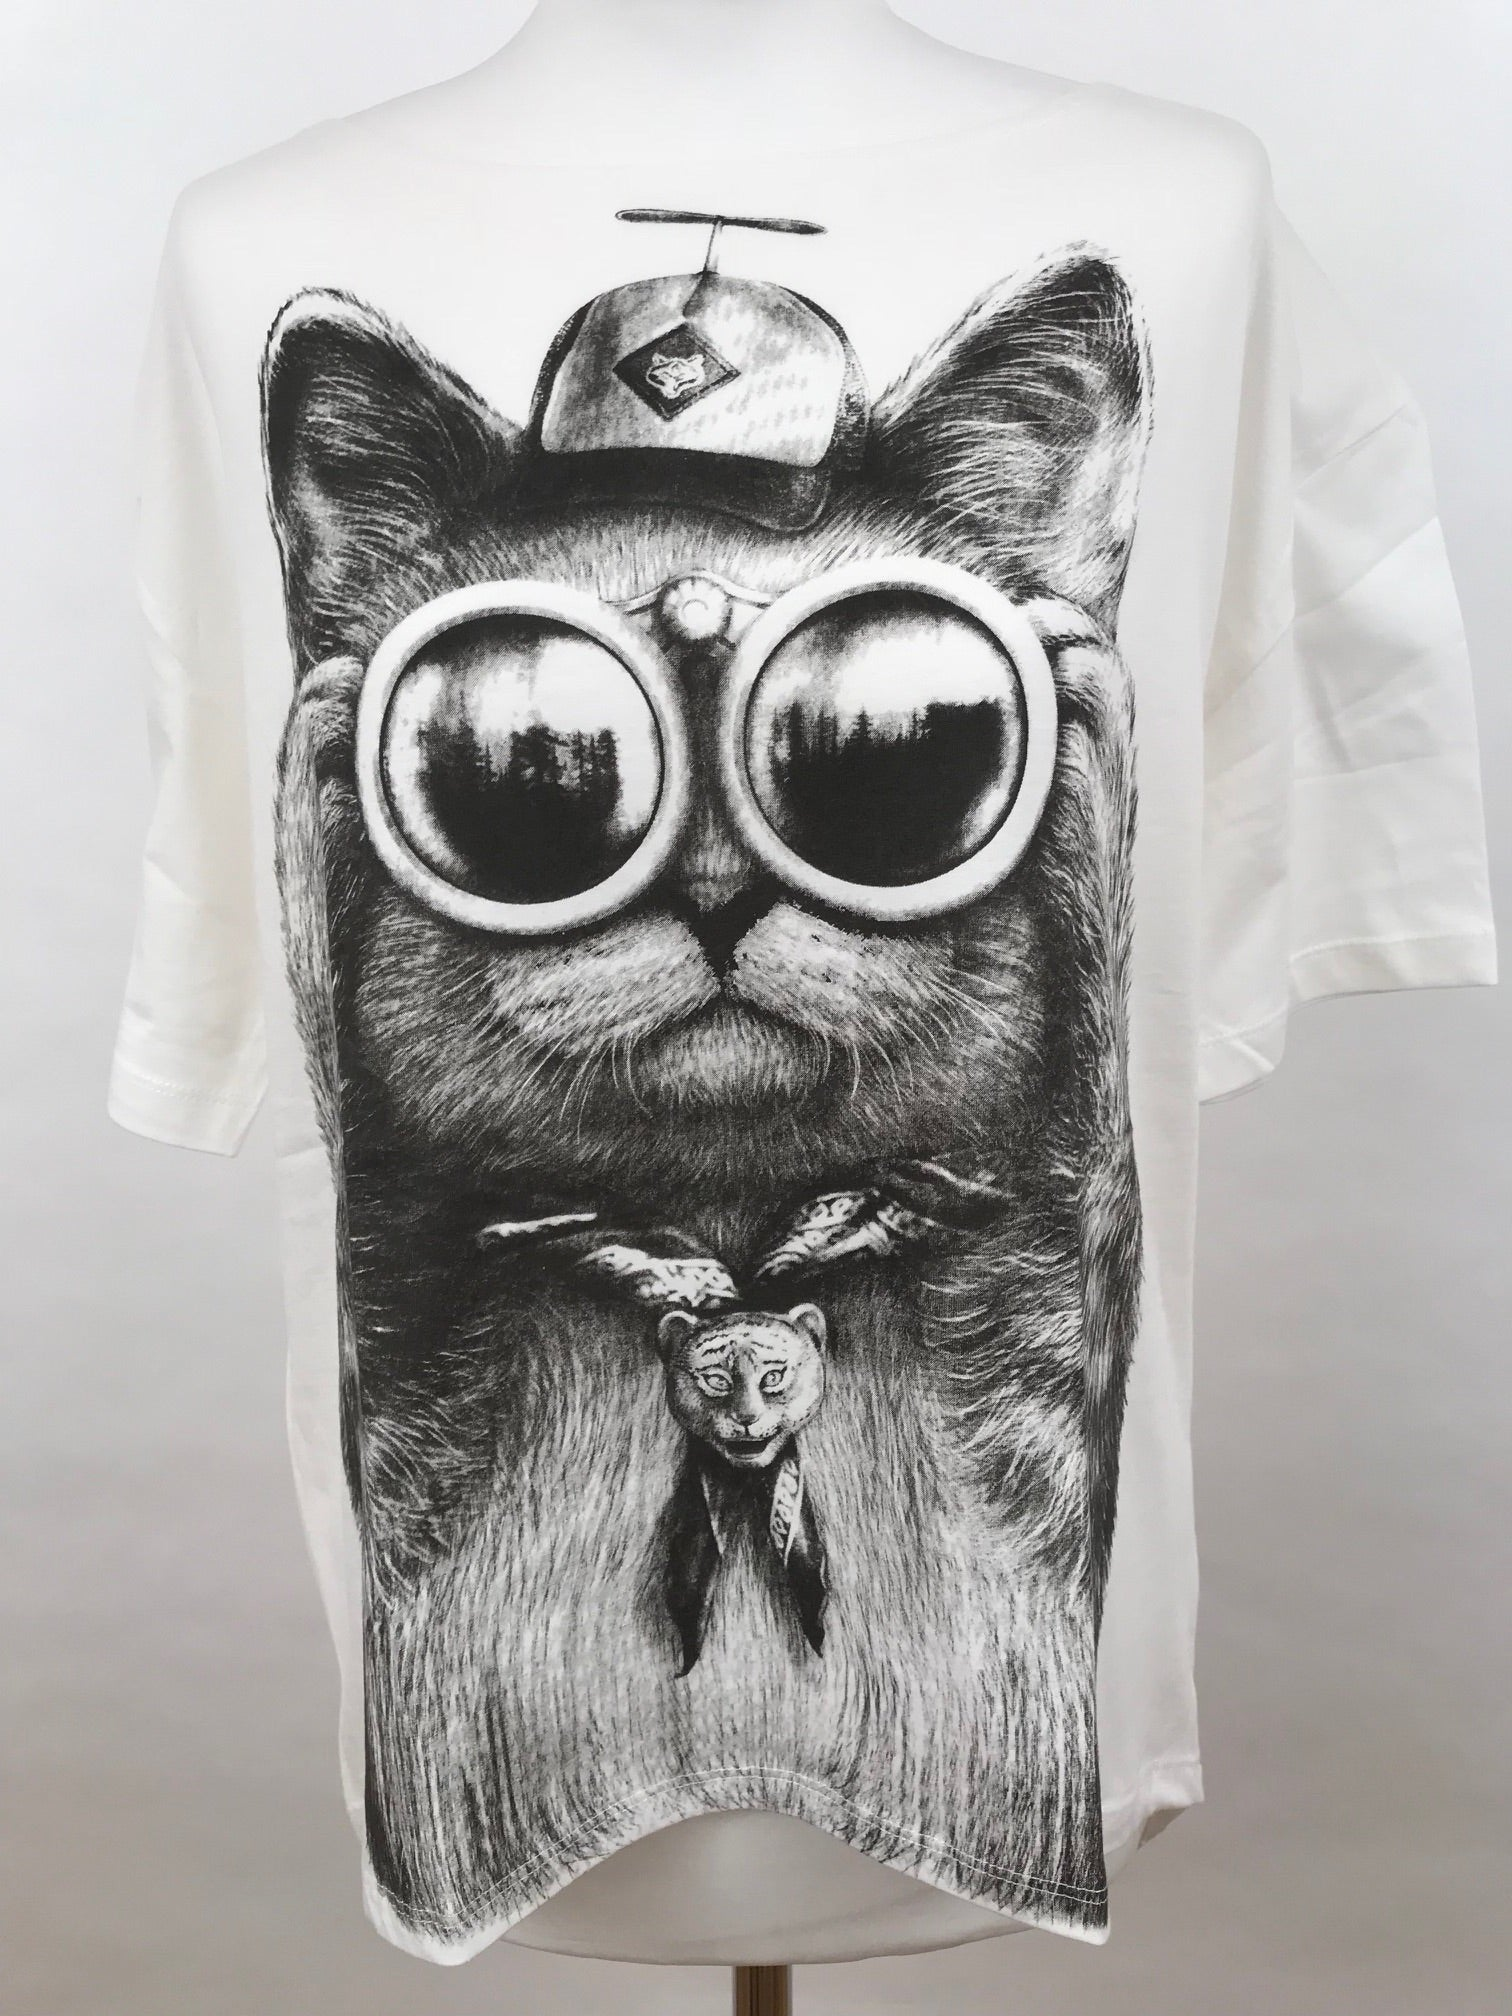 Oii Oversize T-Shirt Cat Glasses